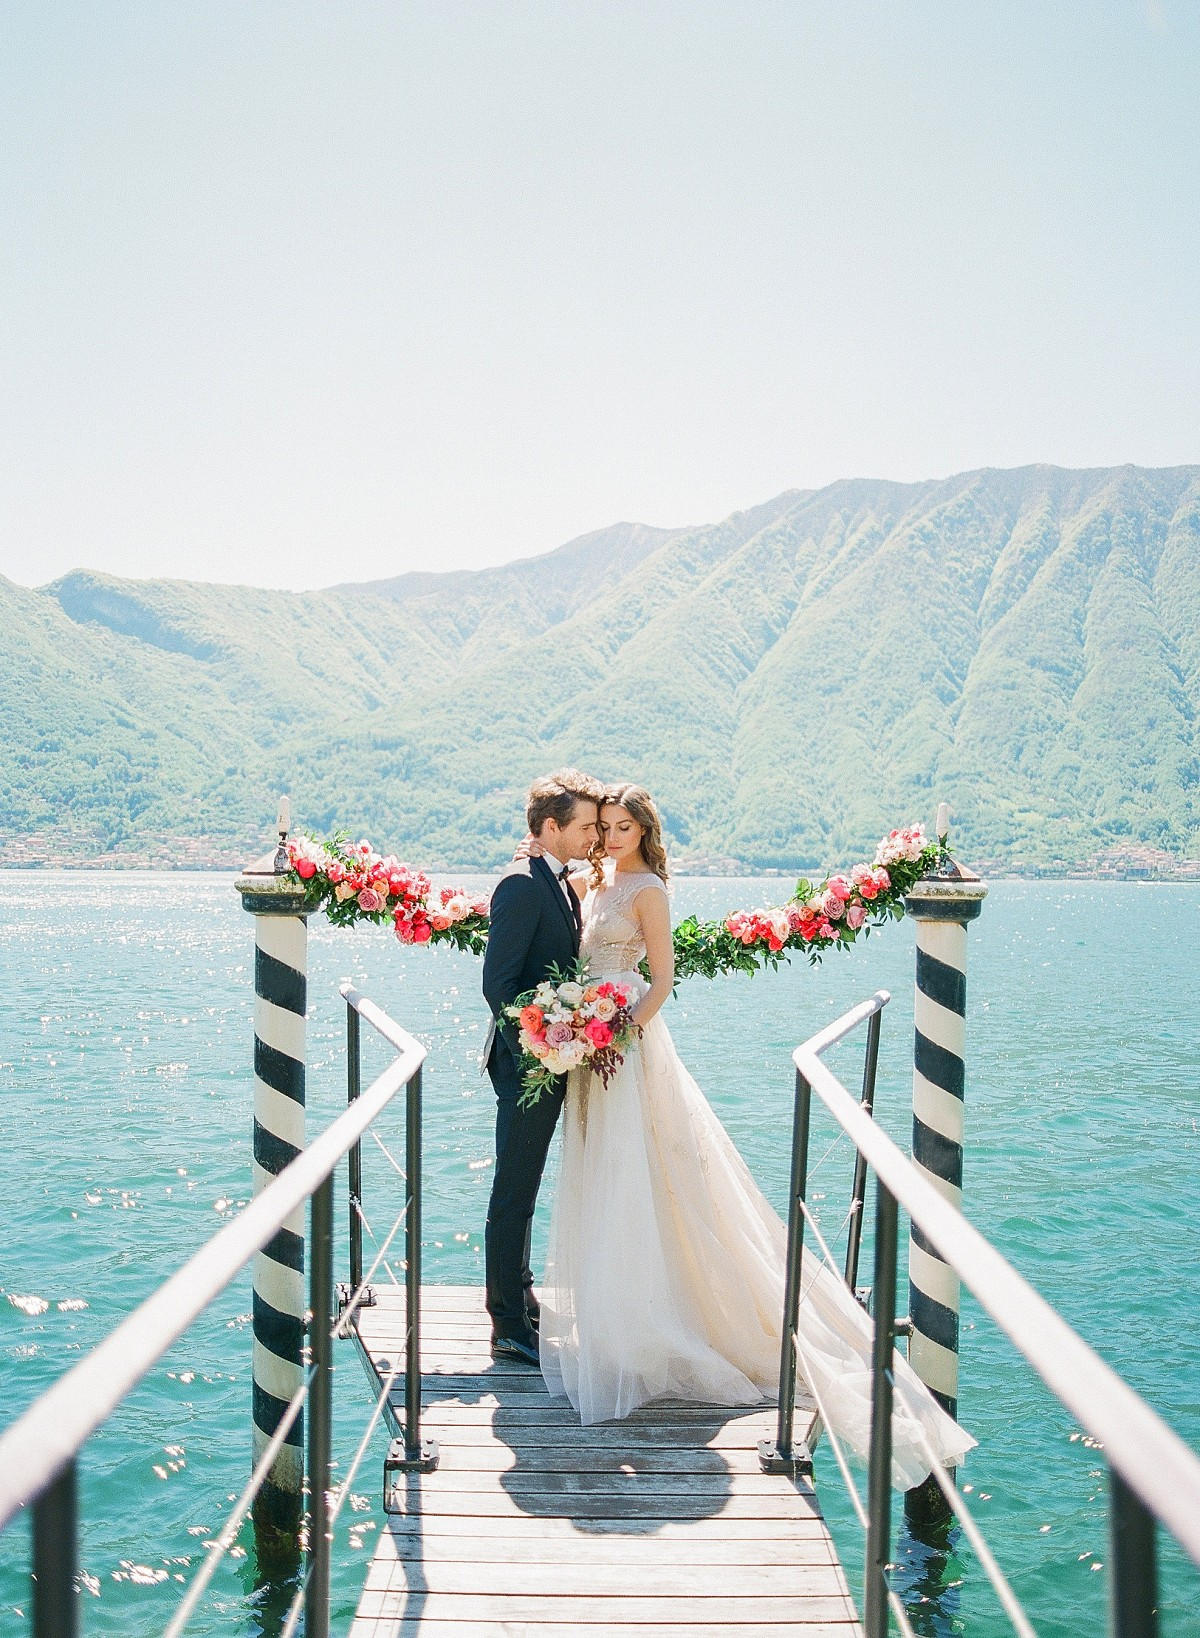 Vibrant, Colorful Wedding Inspiration at a Lakeside Italian Villa